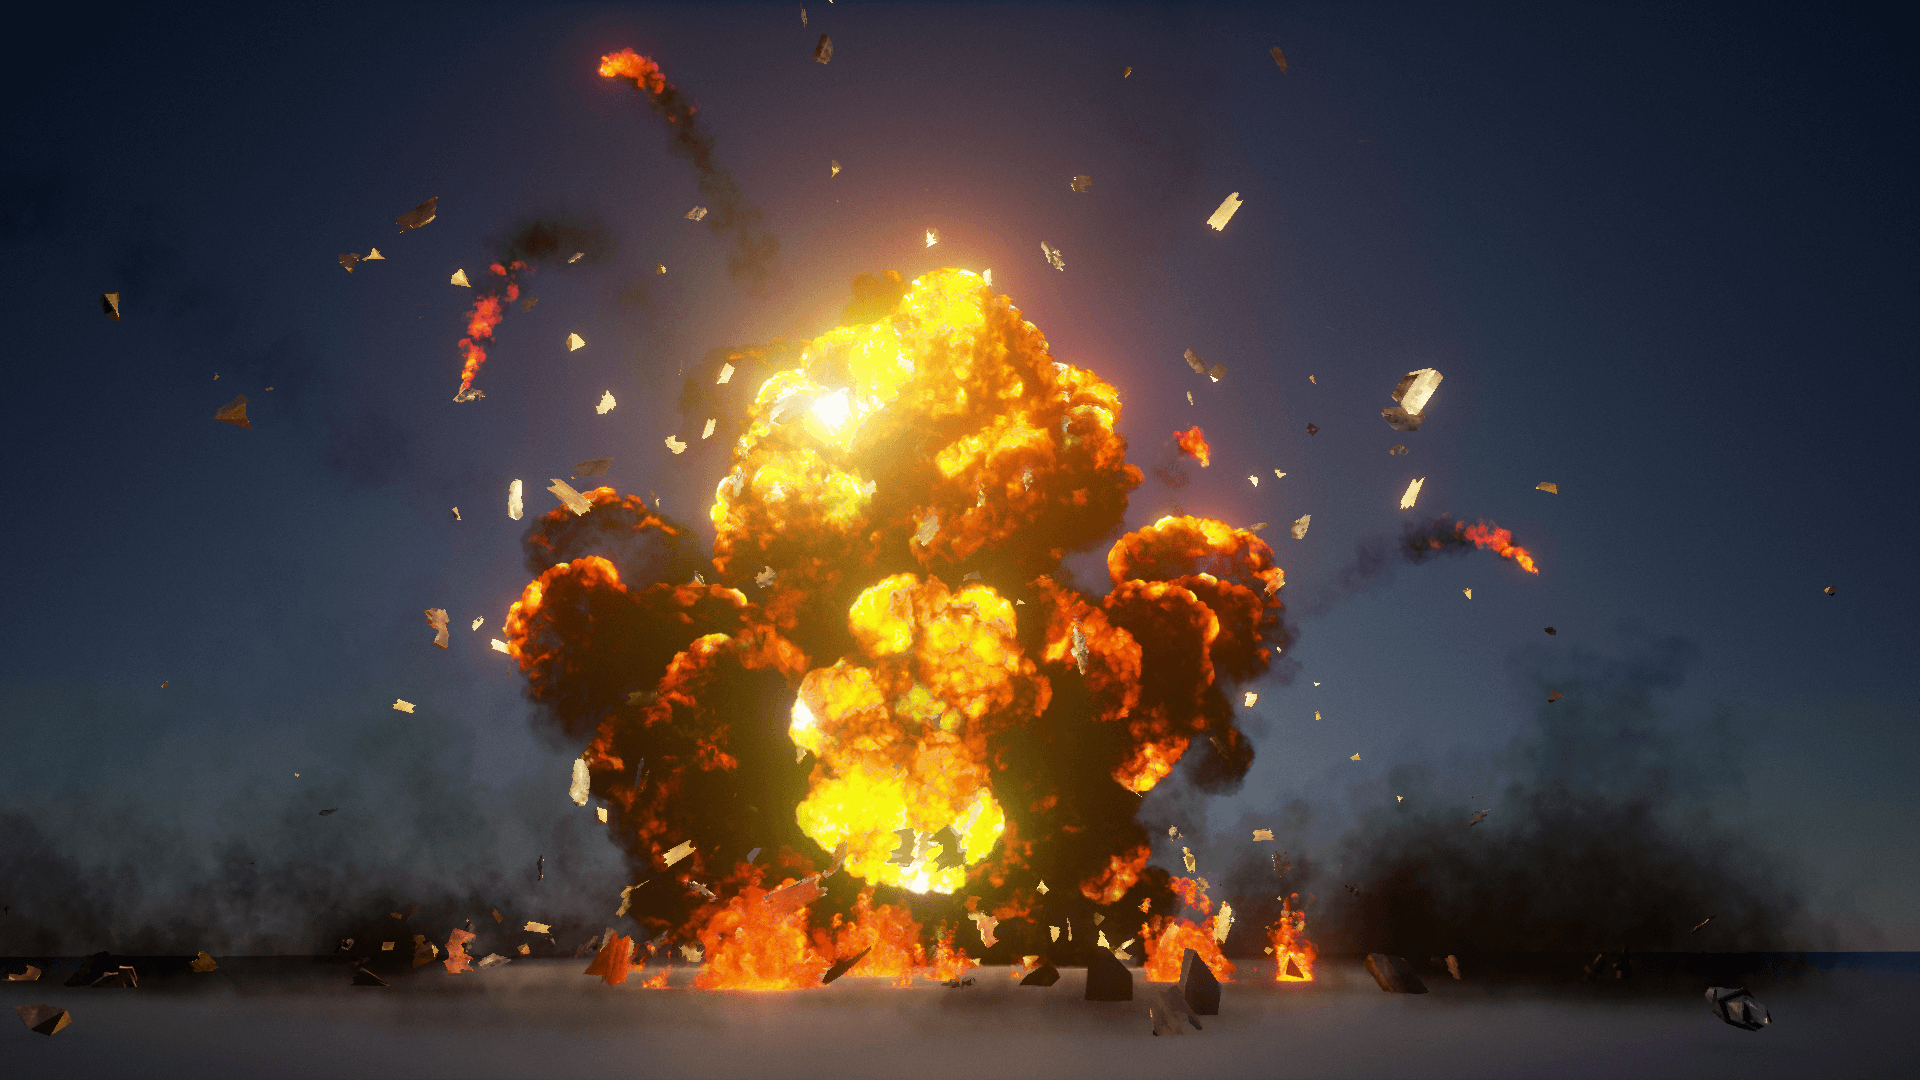 The Explosions Mega Pack by Advanced Asset Packs in FX - UE4 Marketplace